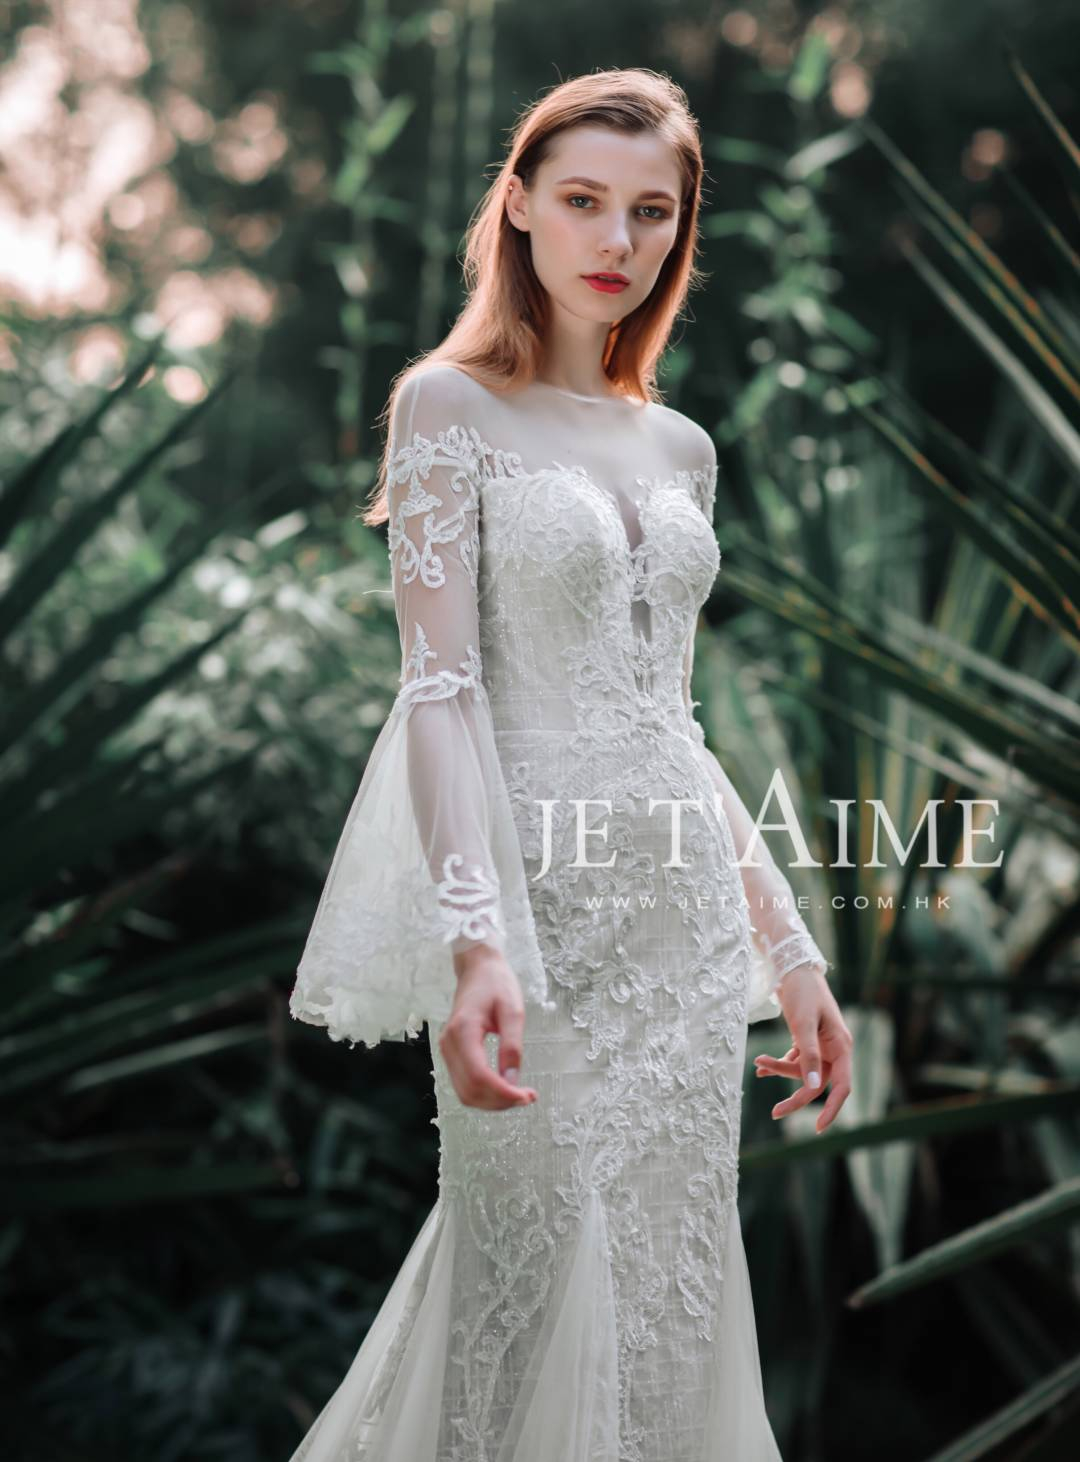 Bespoke Wedding x Je T'aime Beaucoup